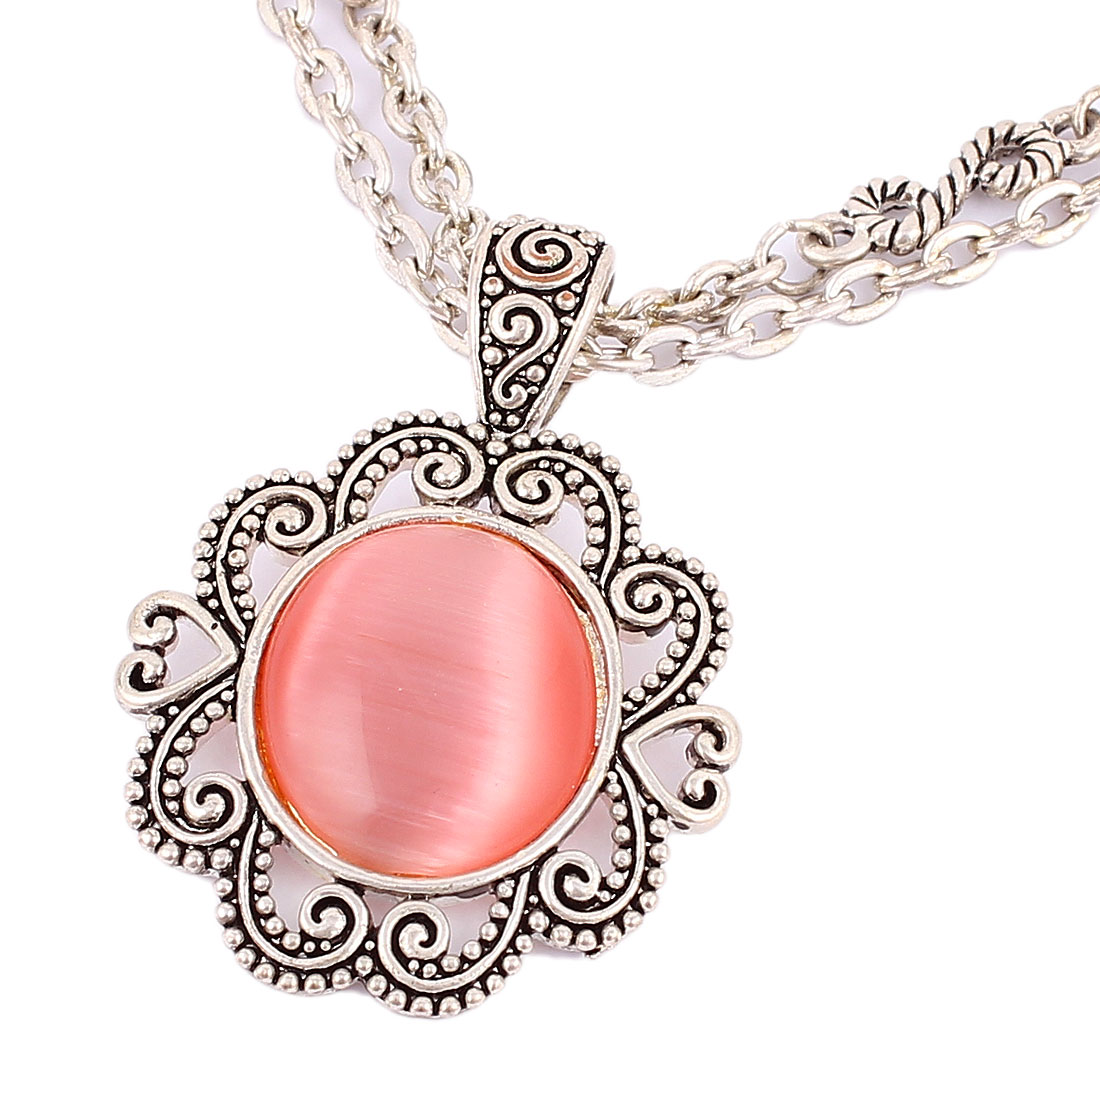 Ladies Women Plastic Crystal Inlaided Pendant Metal Lobster Buckle Strip Link Thick Double Chains Necklace Neckwear Silver Tone Pink